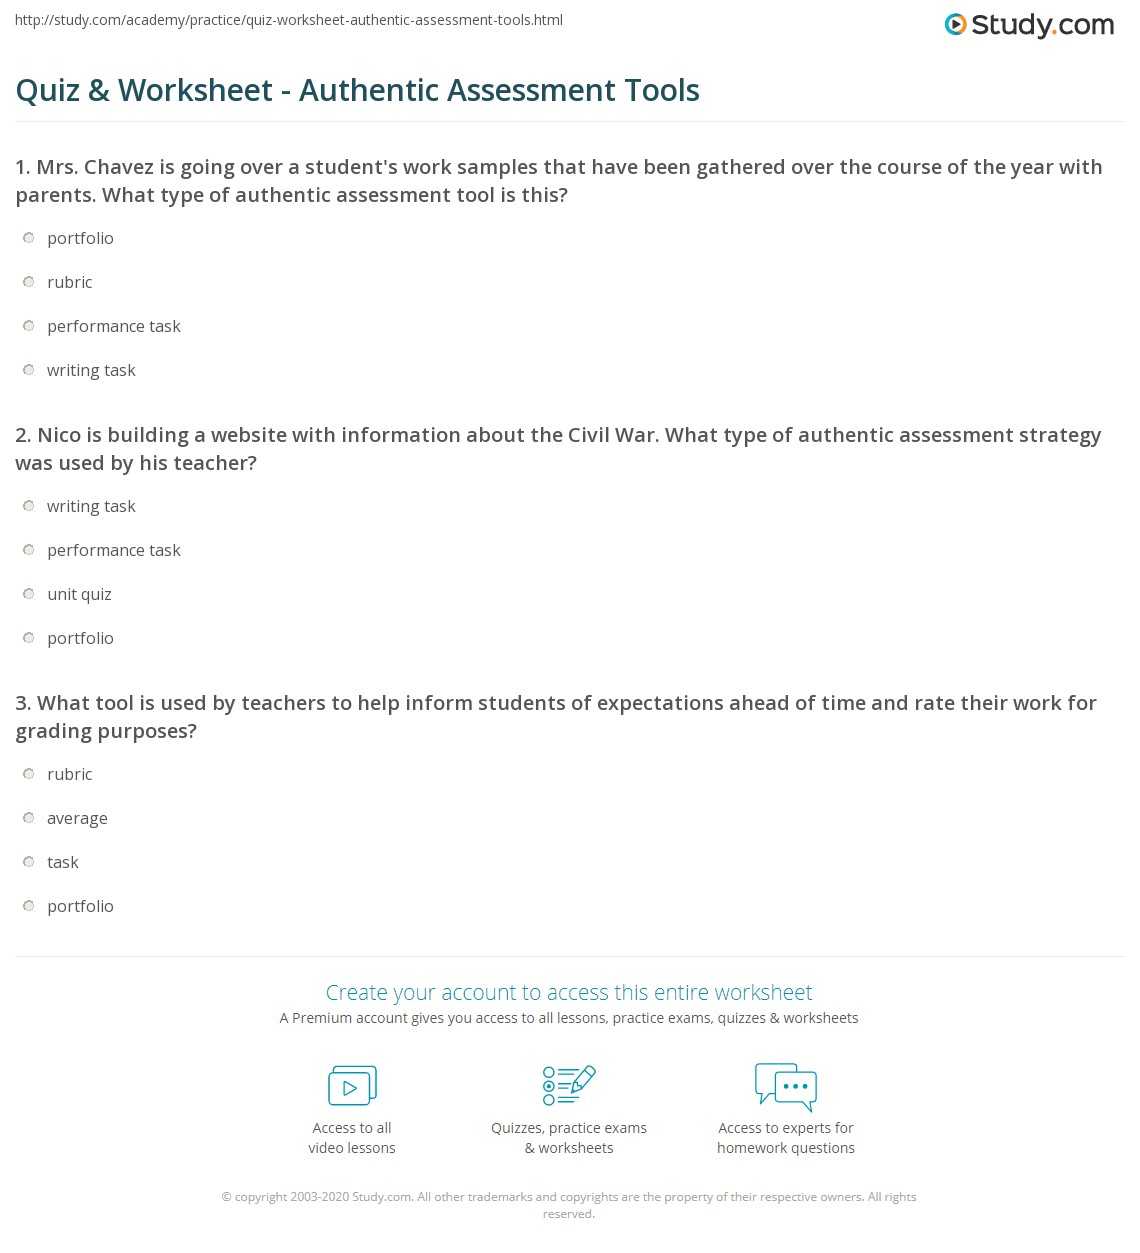 quiz worksheet authentic assessment tools com nico is building a website information about the civil war what type of authentic assessment strategy was used by his teacher